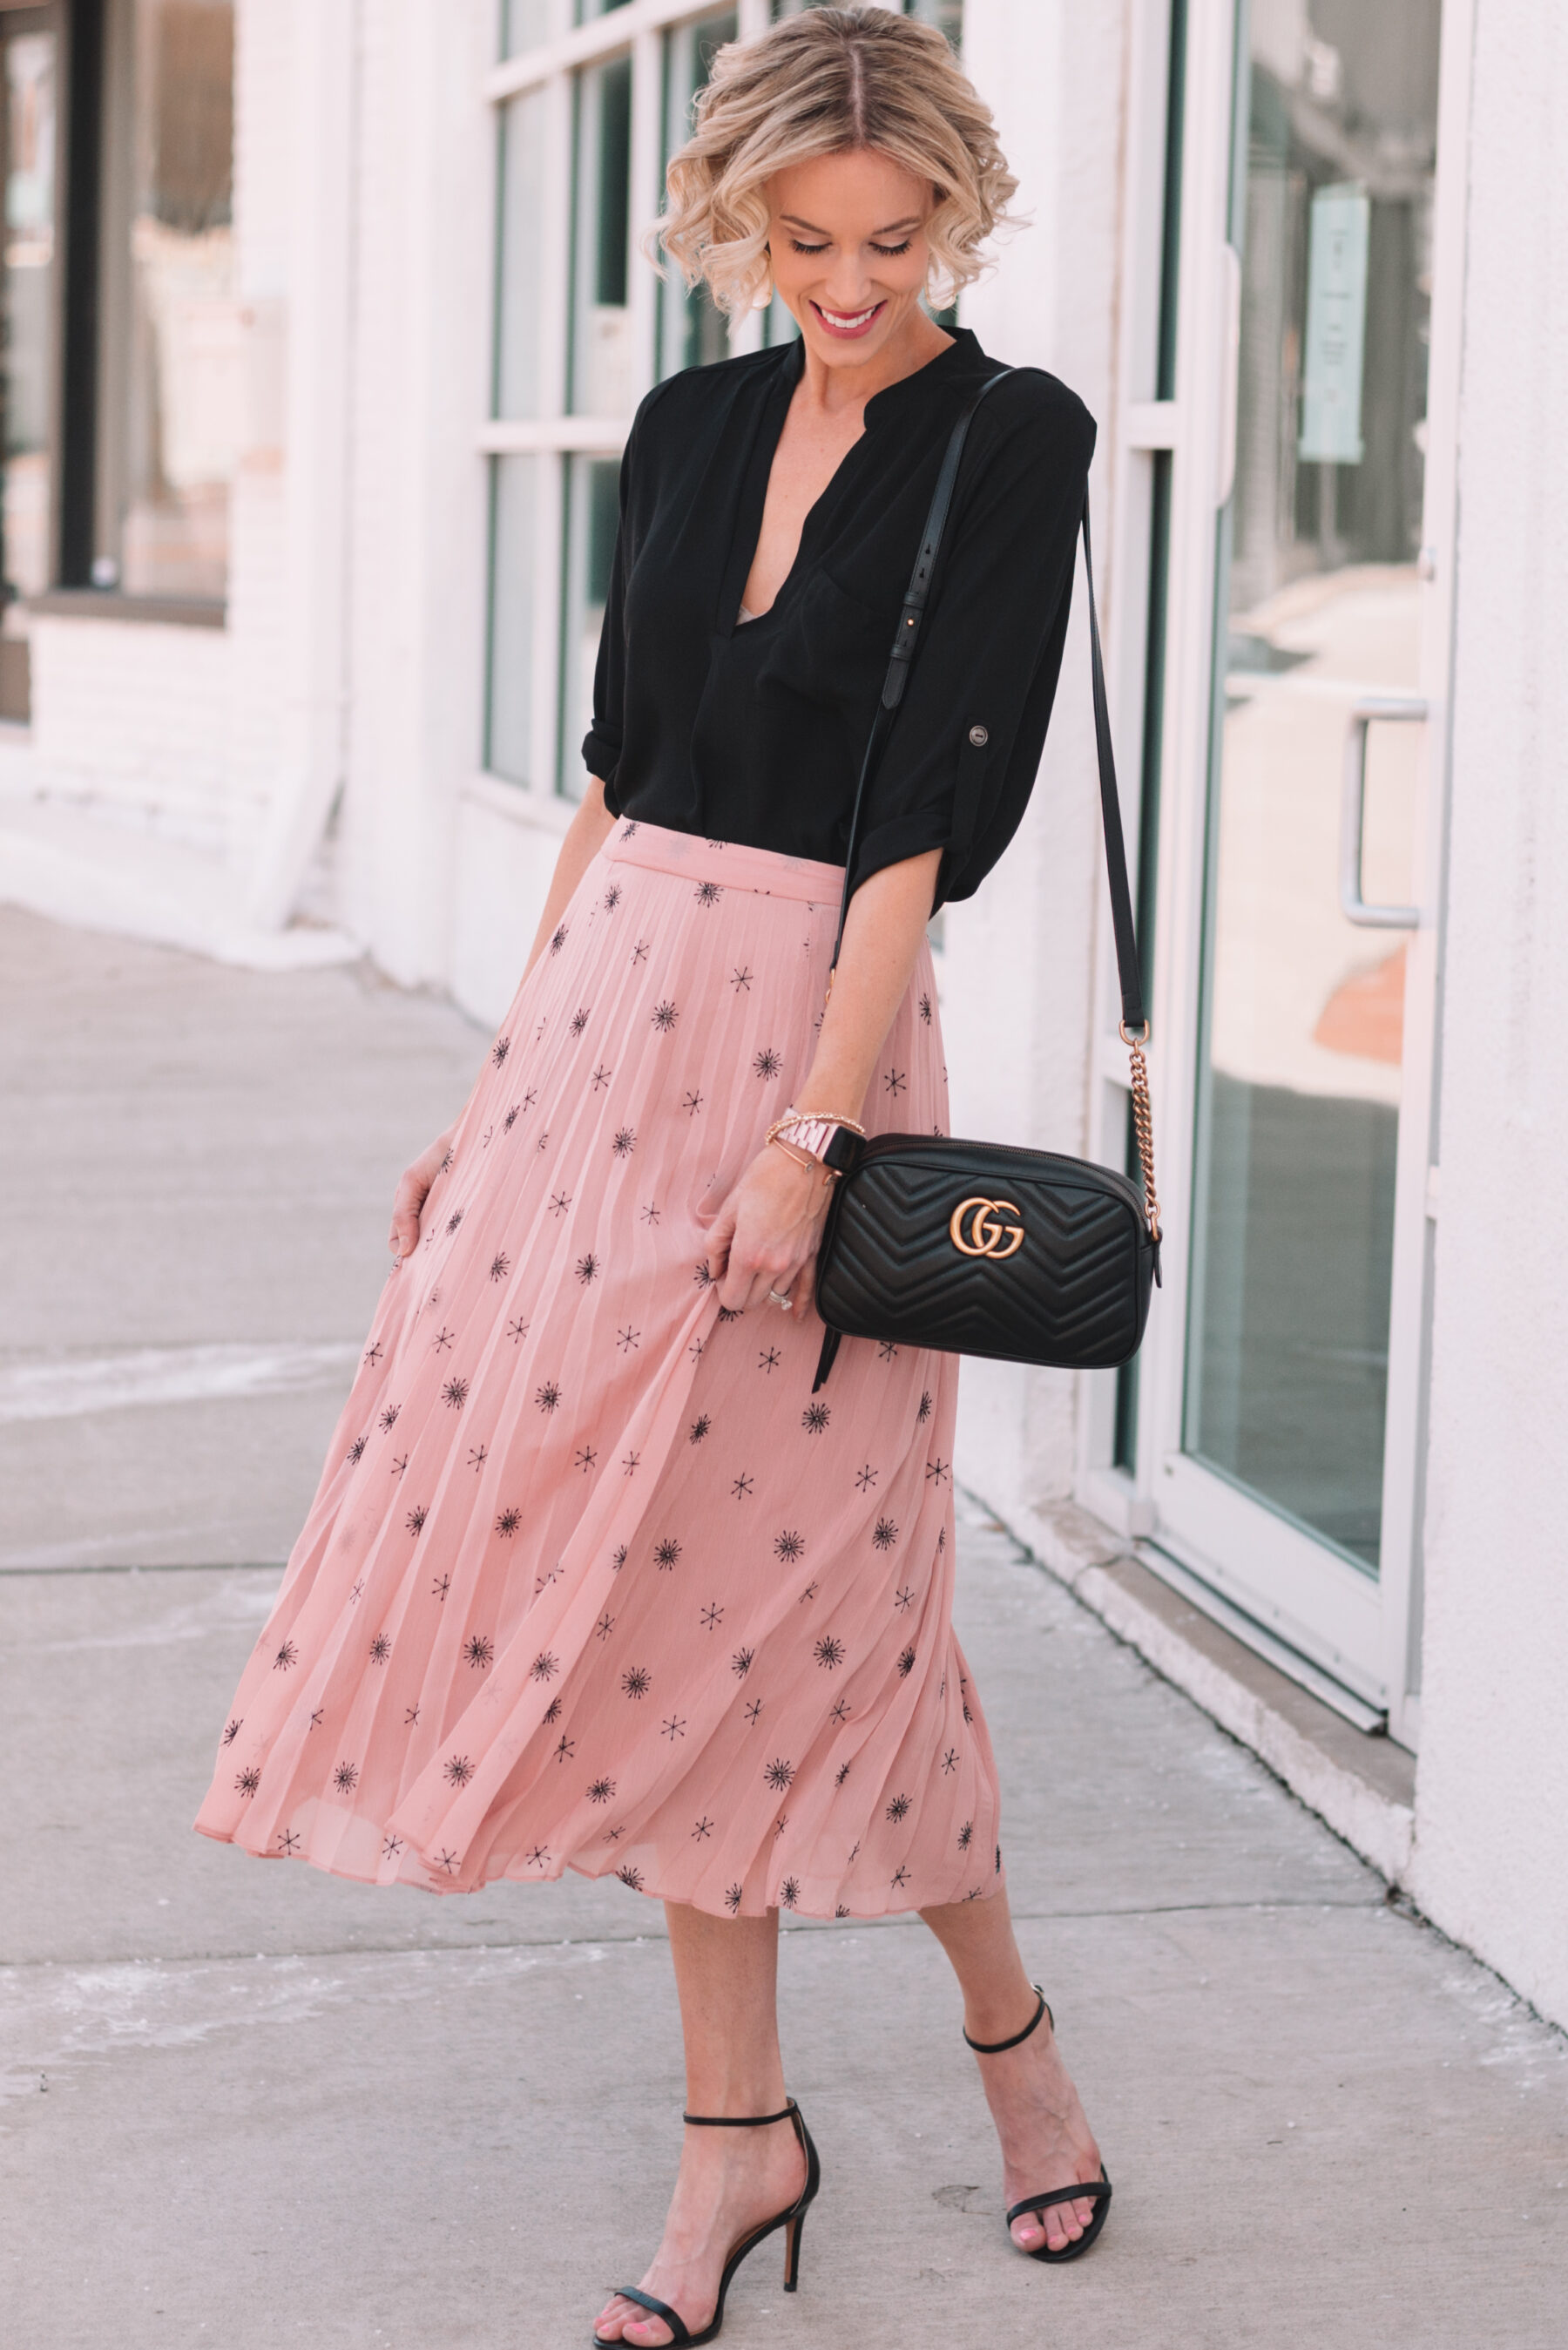 152926acd62 midi skirt obsession, gorgeous blush embroidered midi skirt paired with  black tunic top for spring ...